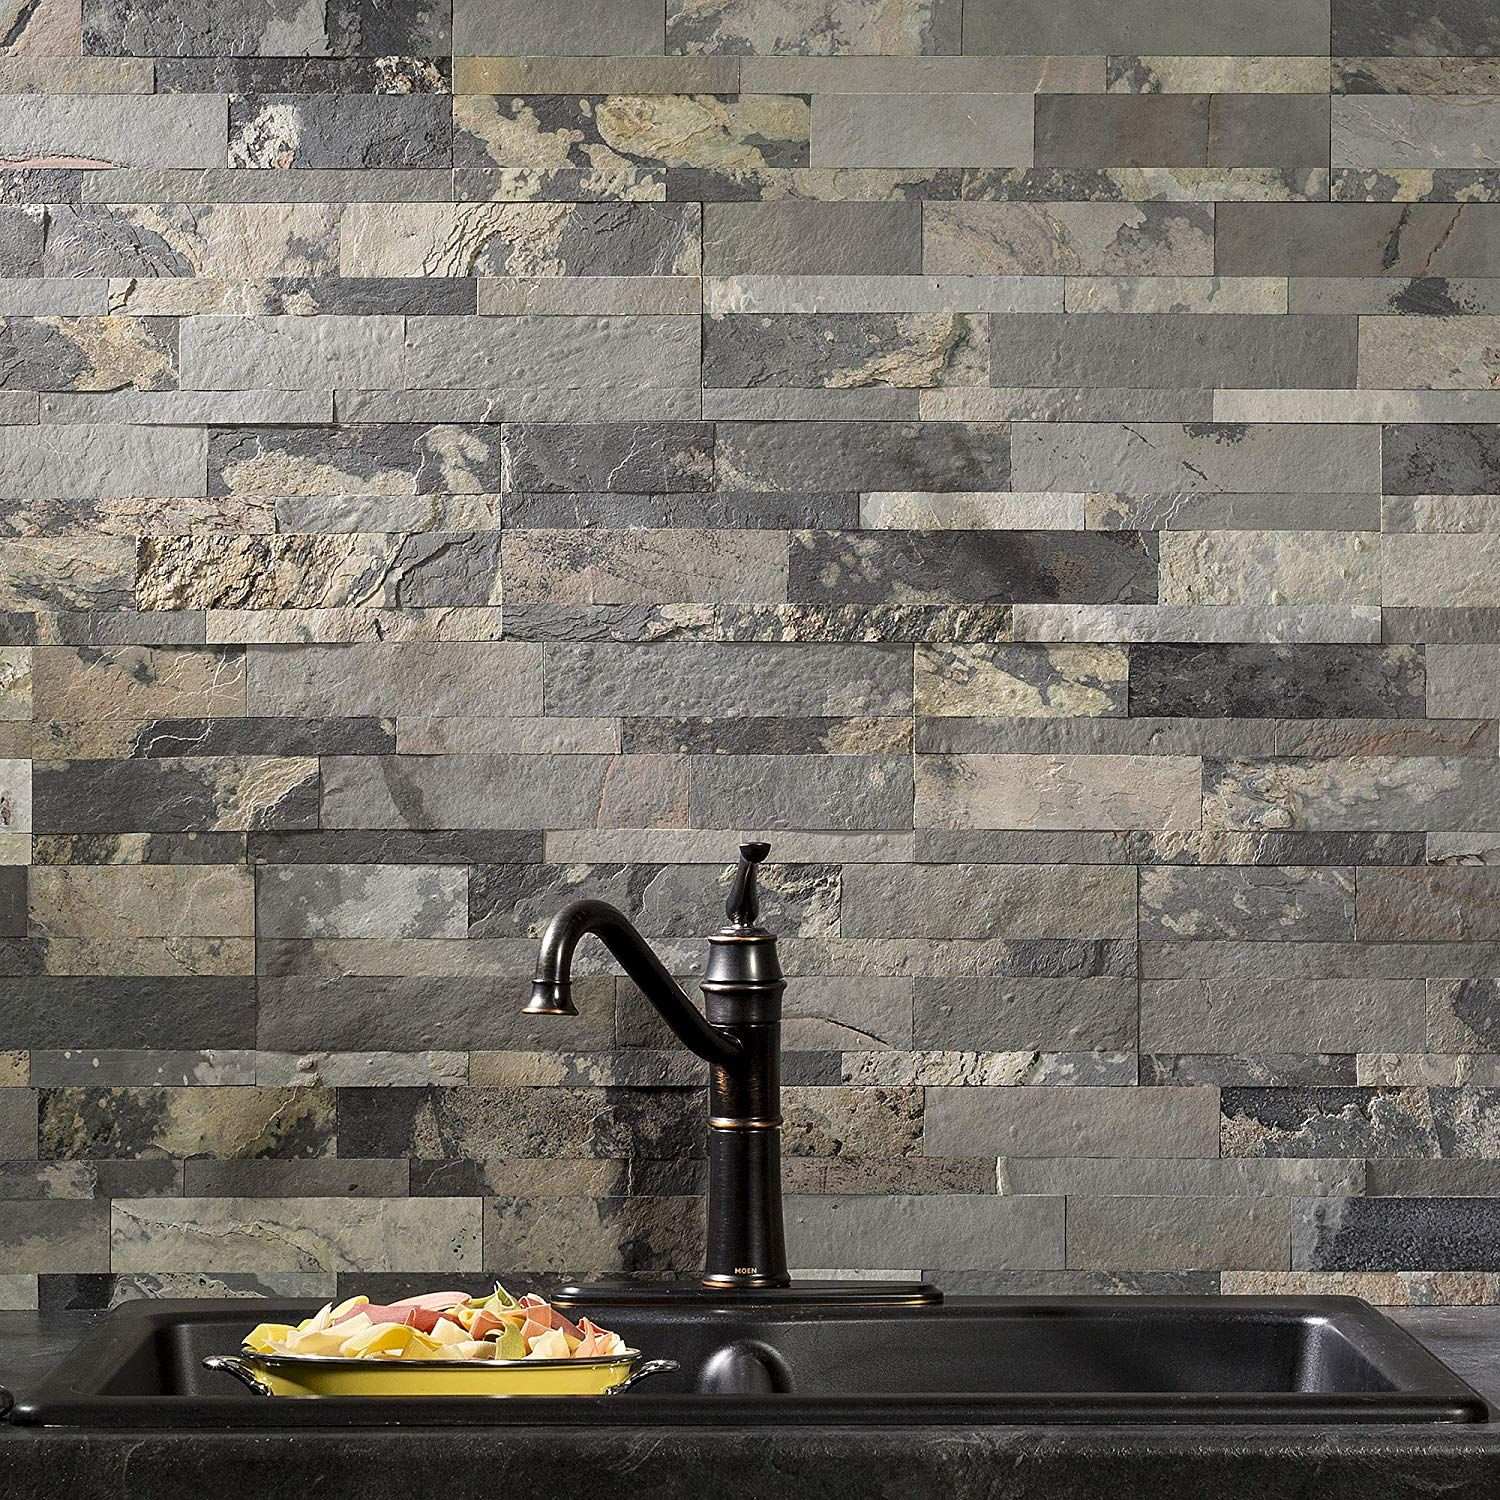 How To Install Stacked Stone Tile On Drywall Stone Backsplash Diy Tile Backsplash Stone Tile Backsplash